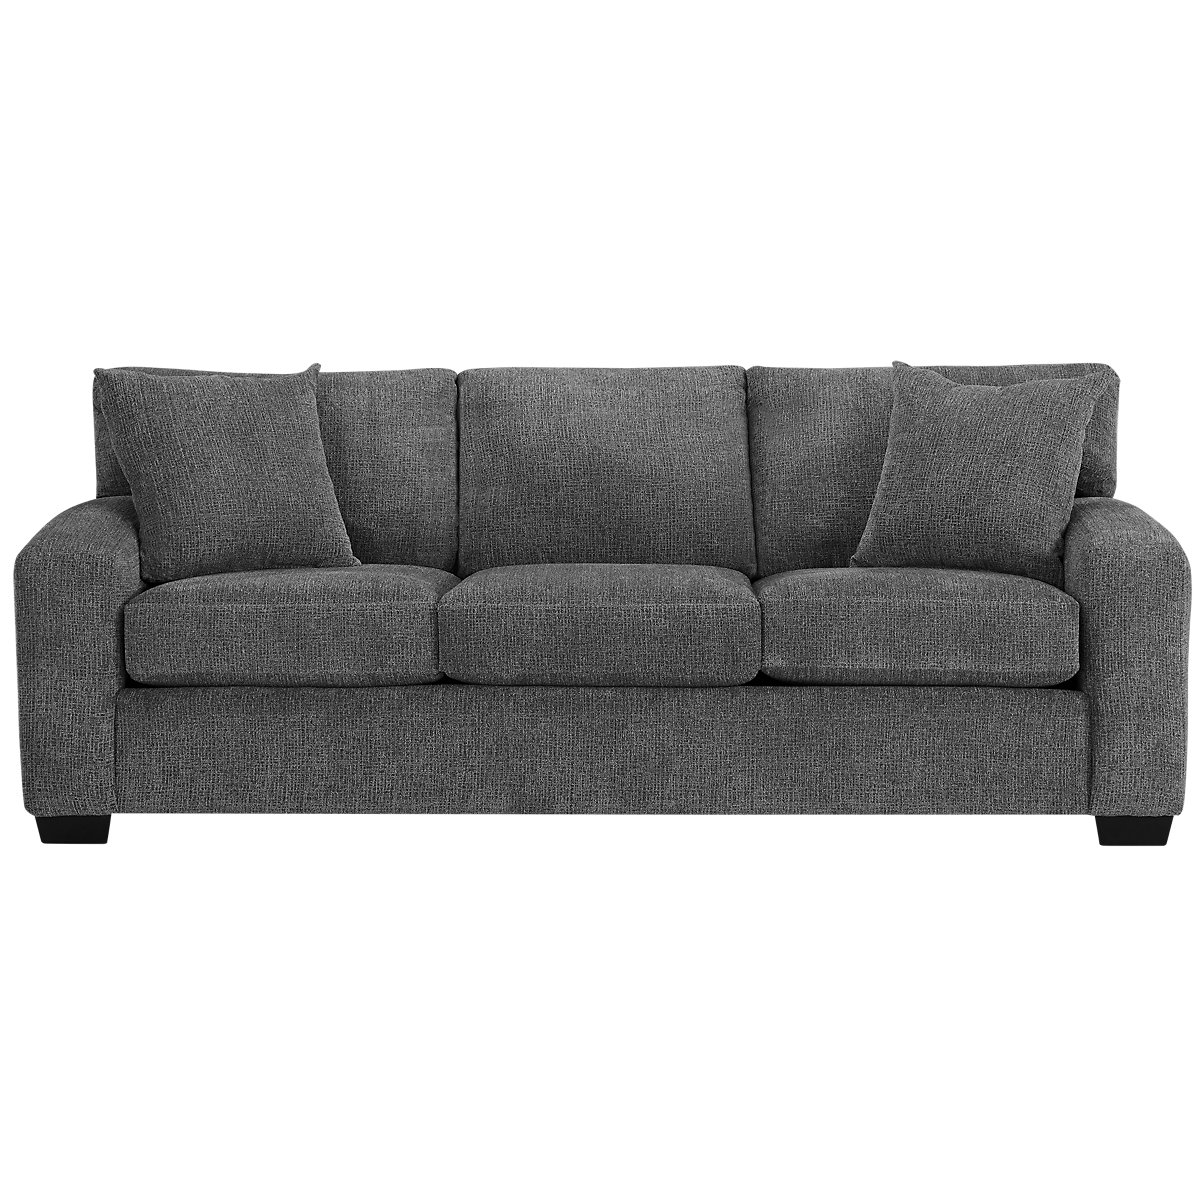 City furniture adam dark gray microfiber sofa for Microfiber sectional sofa